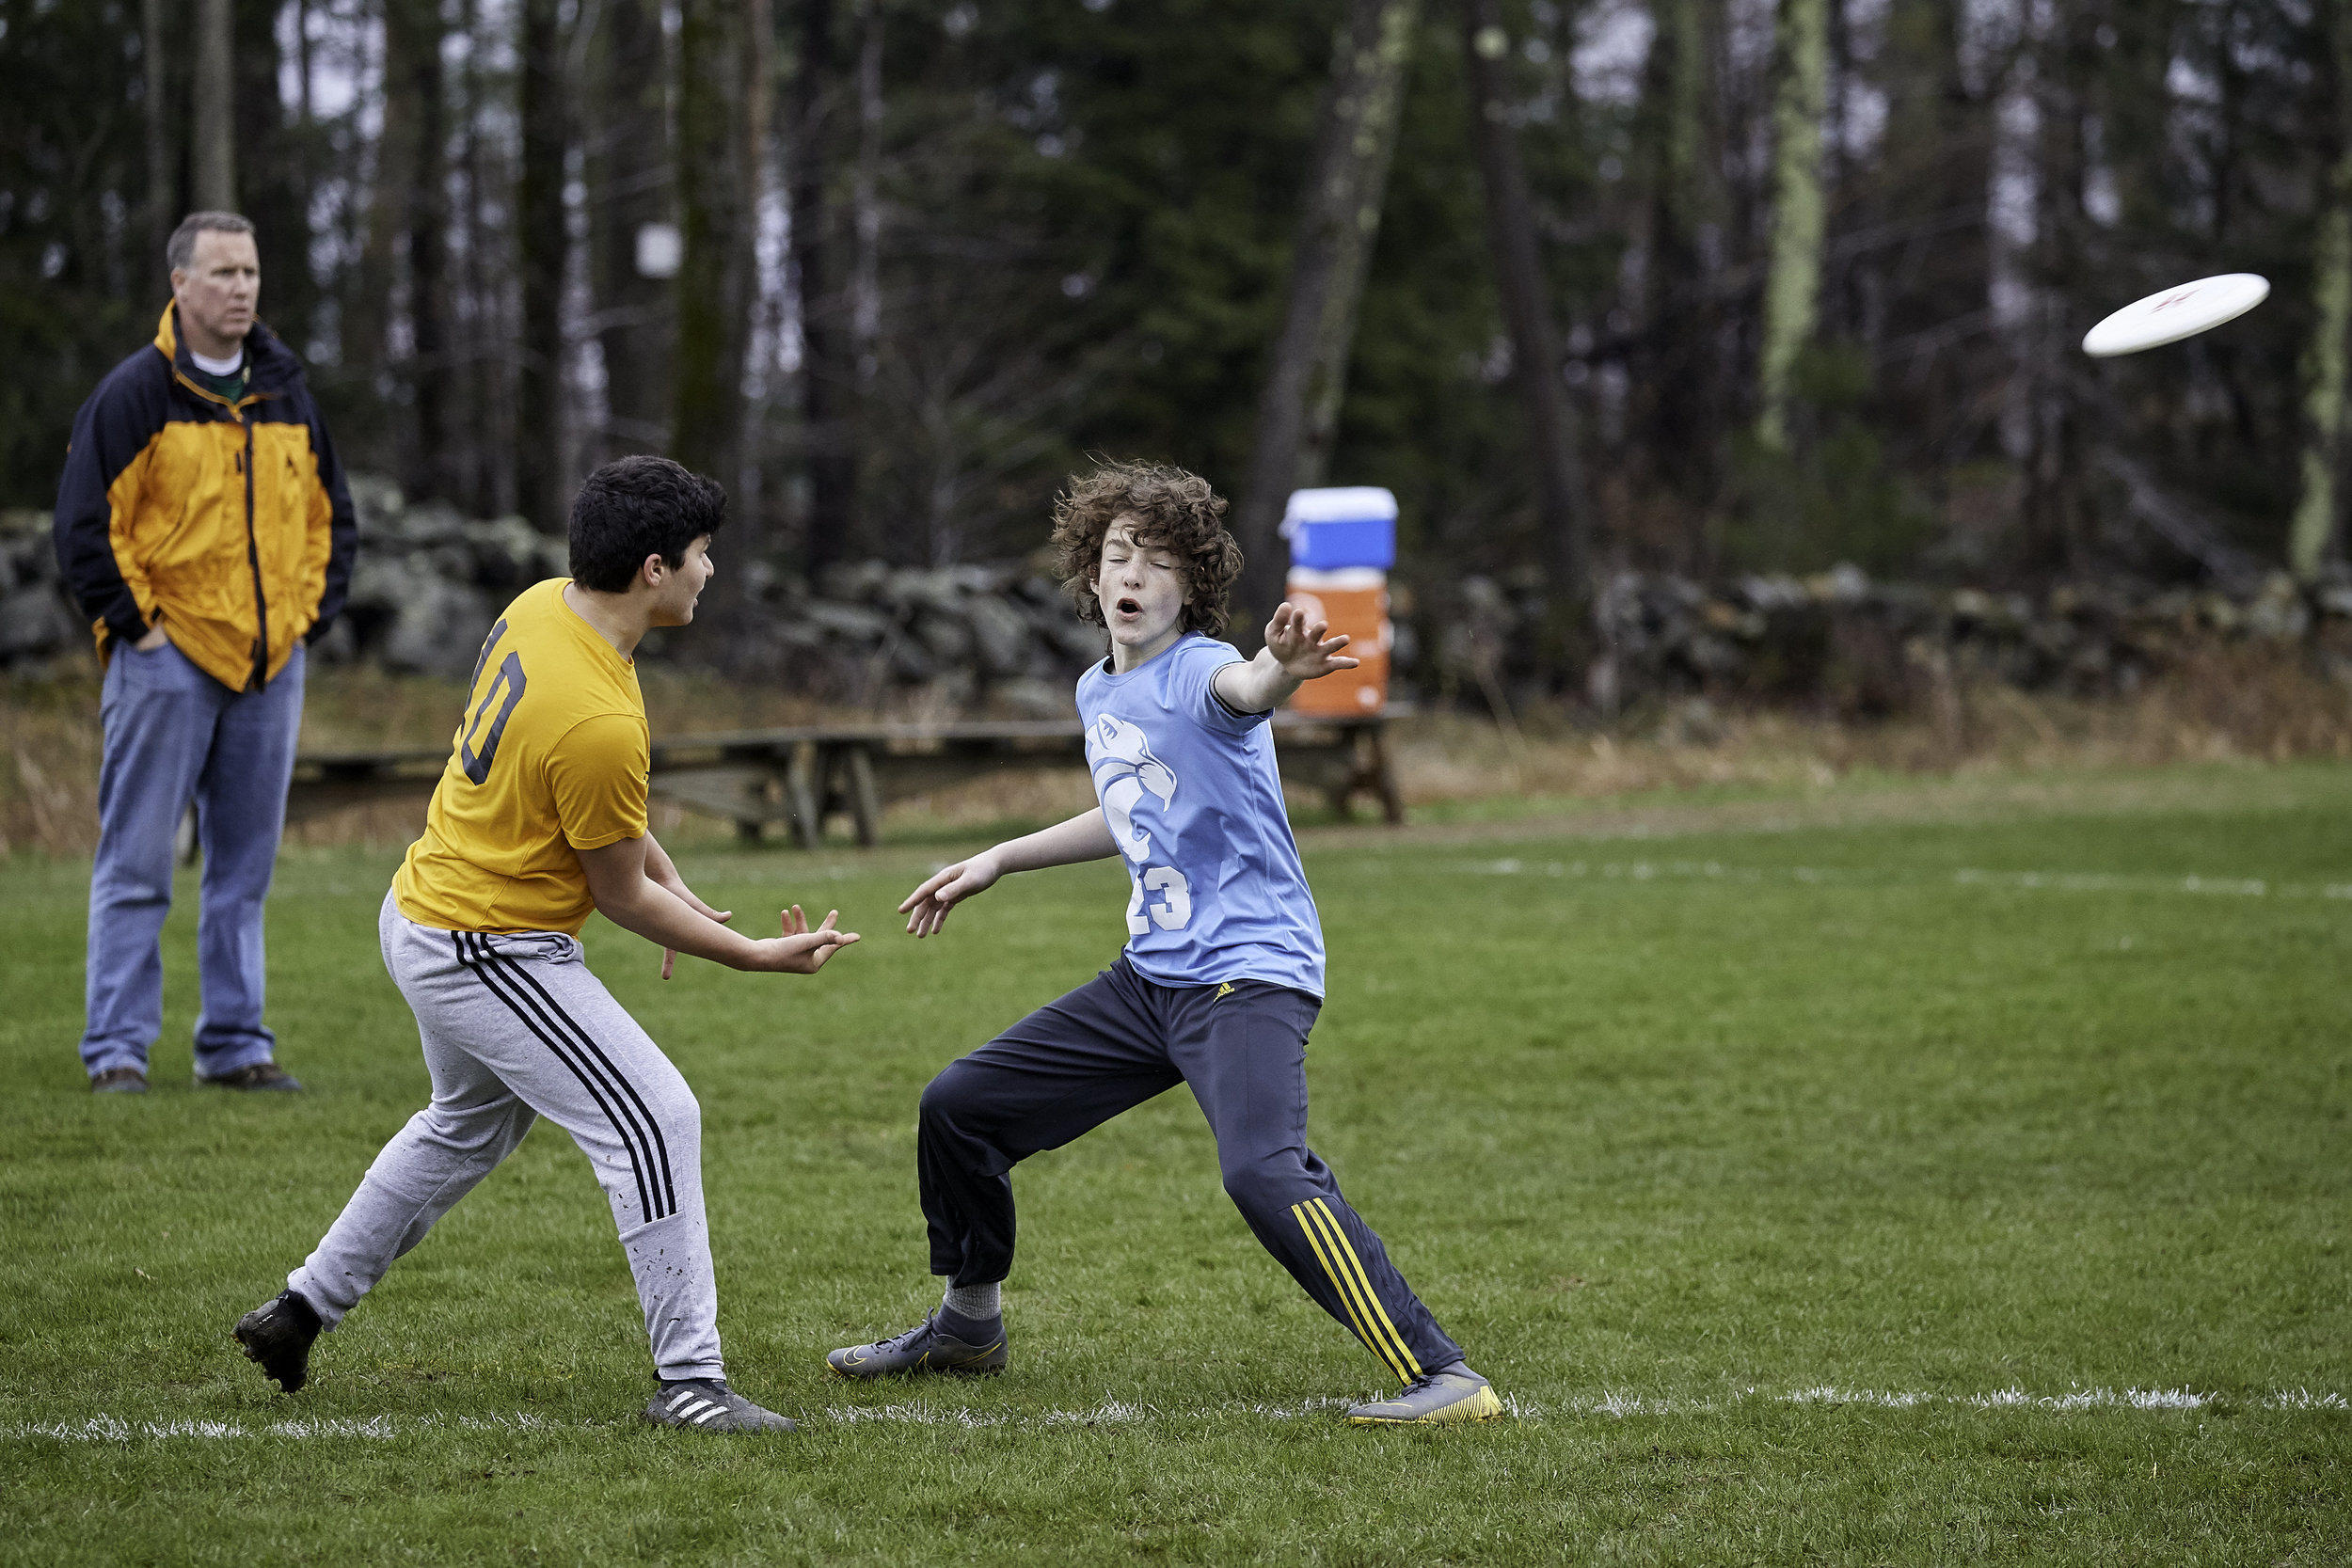 Ultimate Frisbee vs. Eagle Hill School - May 3, 2019 - 188405.jpg